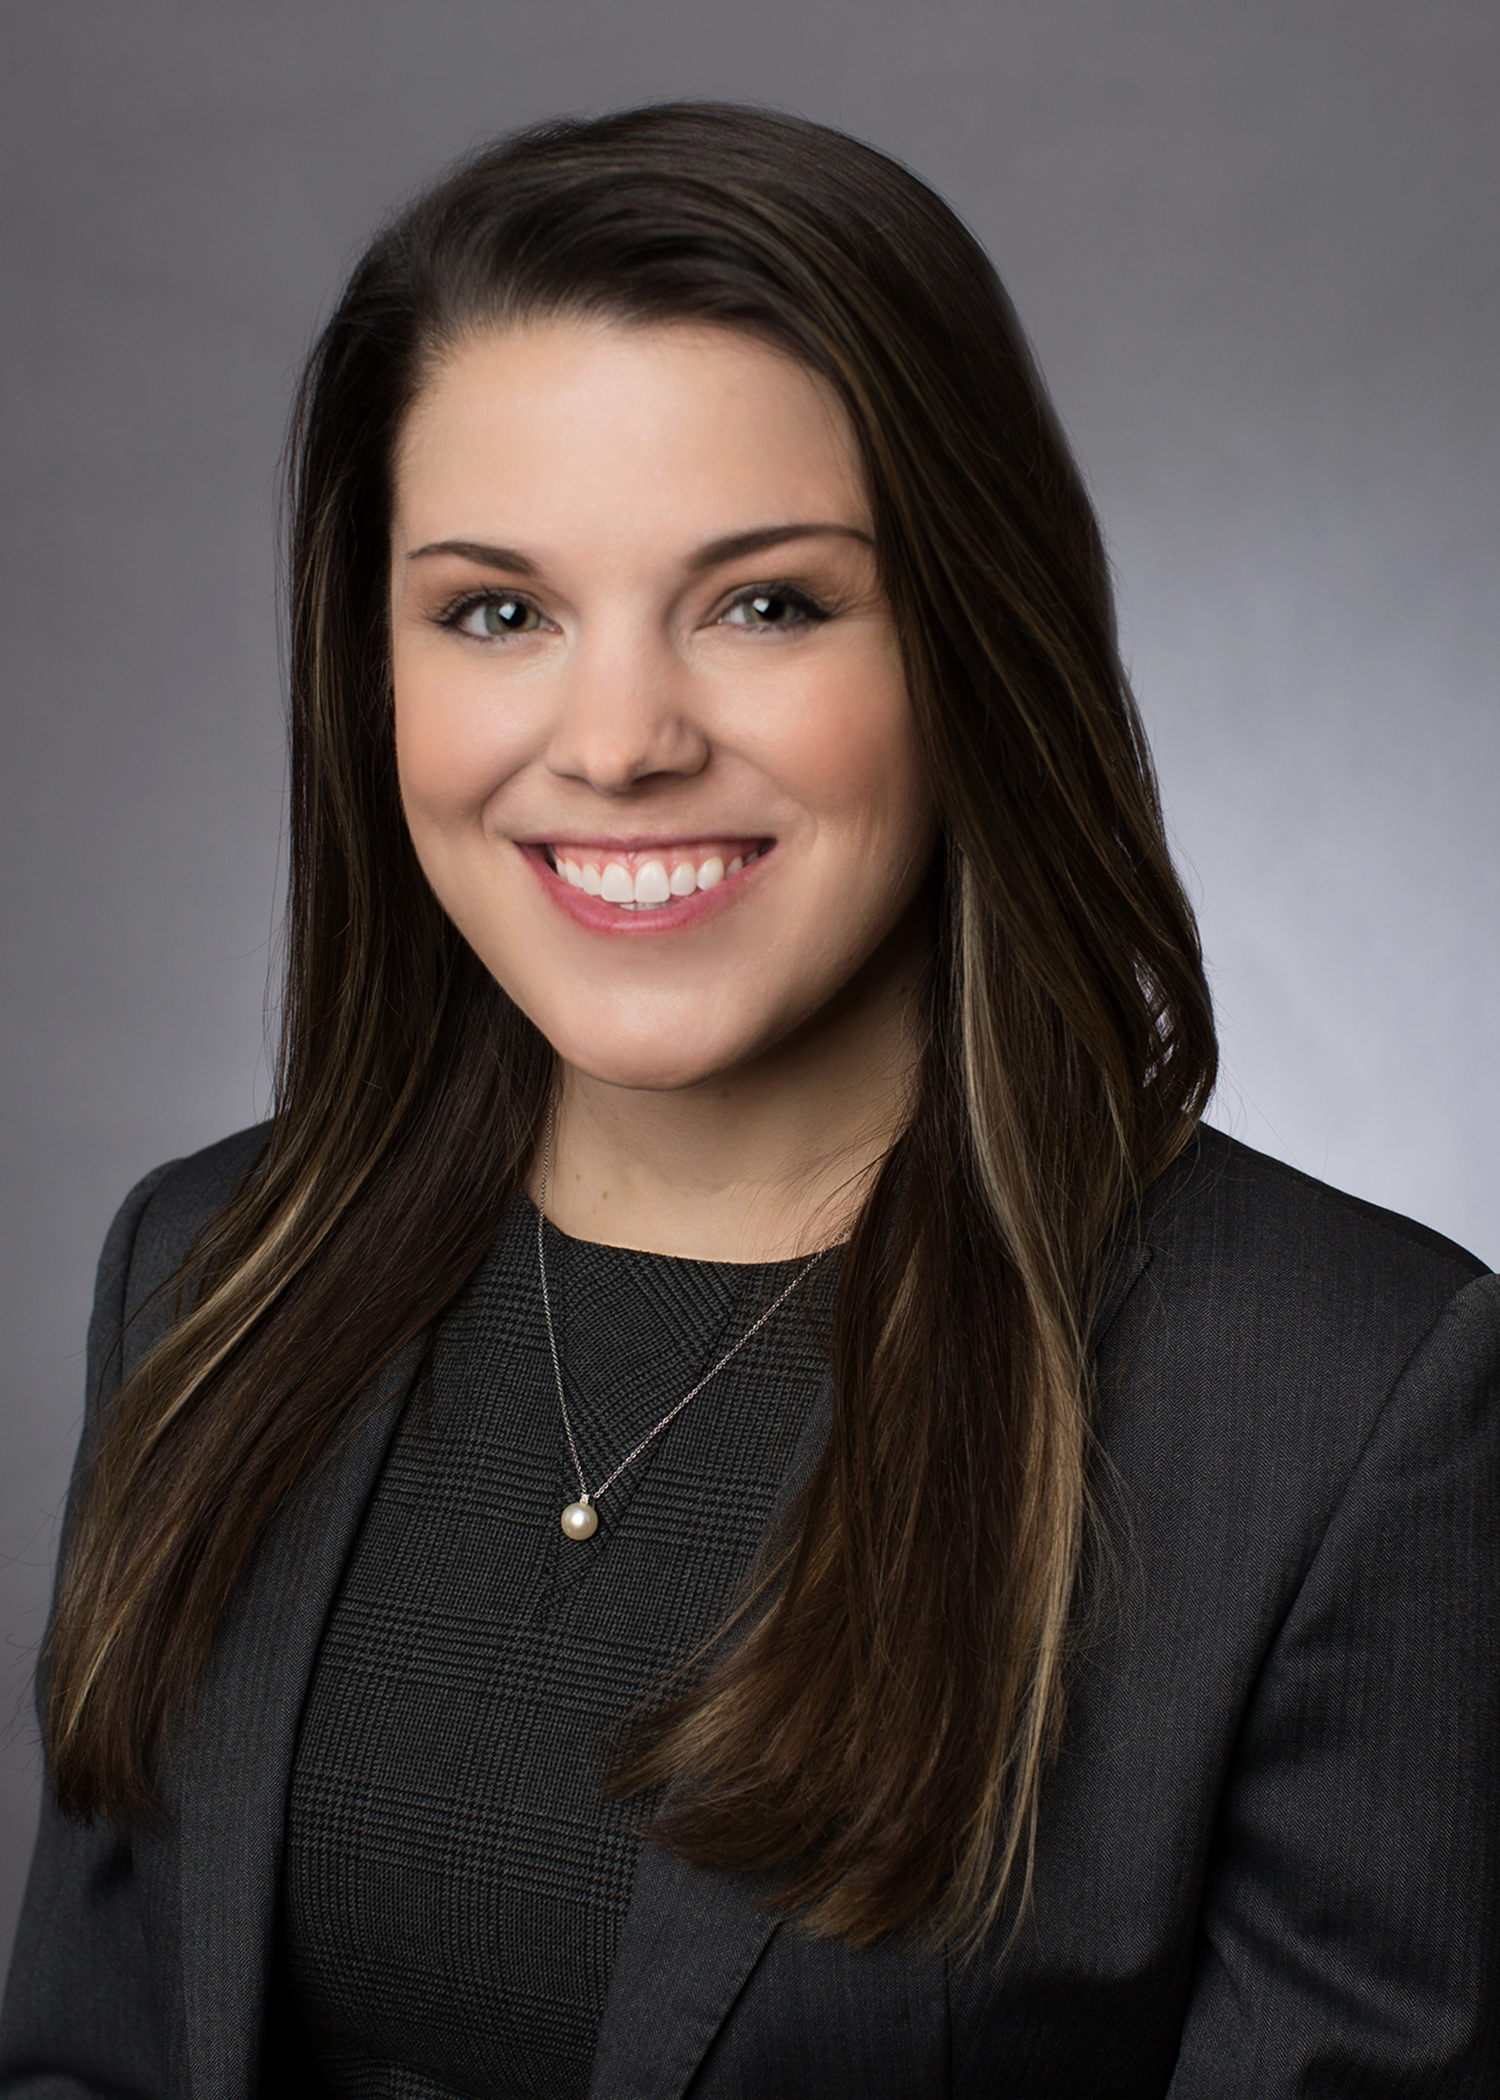 Shannon Haberle Associate at Tassone, Dreicer, & Hill